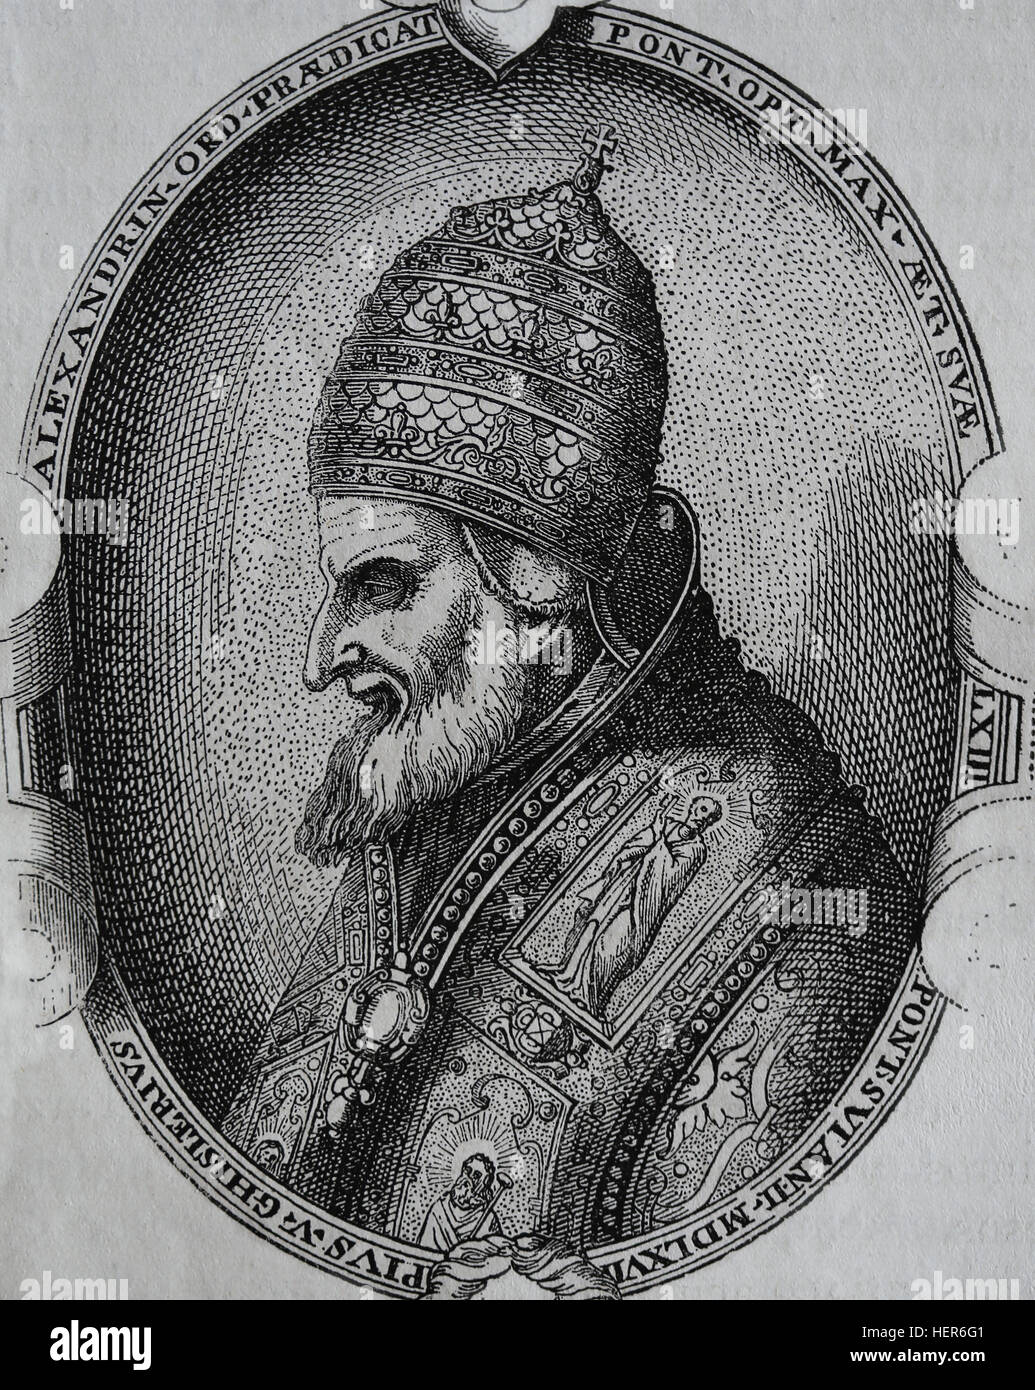 Pope Saint Pius V (1504-1572). Pope from 1566-1572. Portrait. Engraving, 1884. Stock Photo